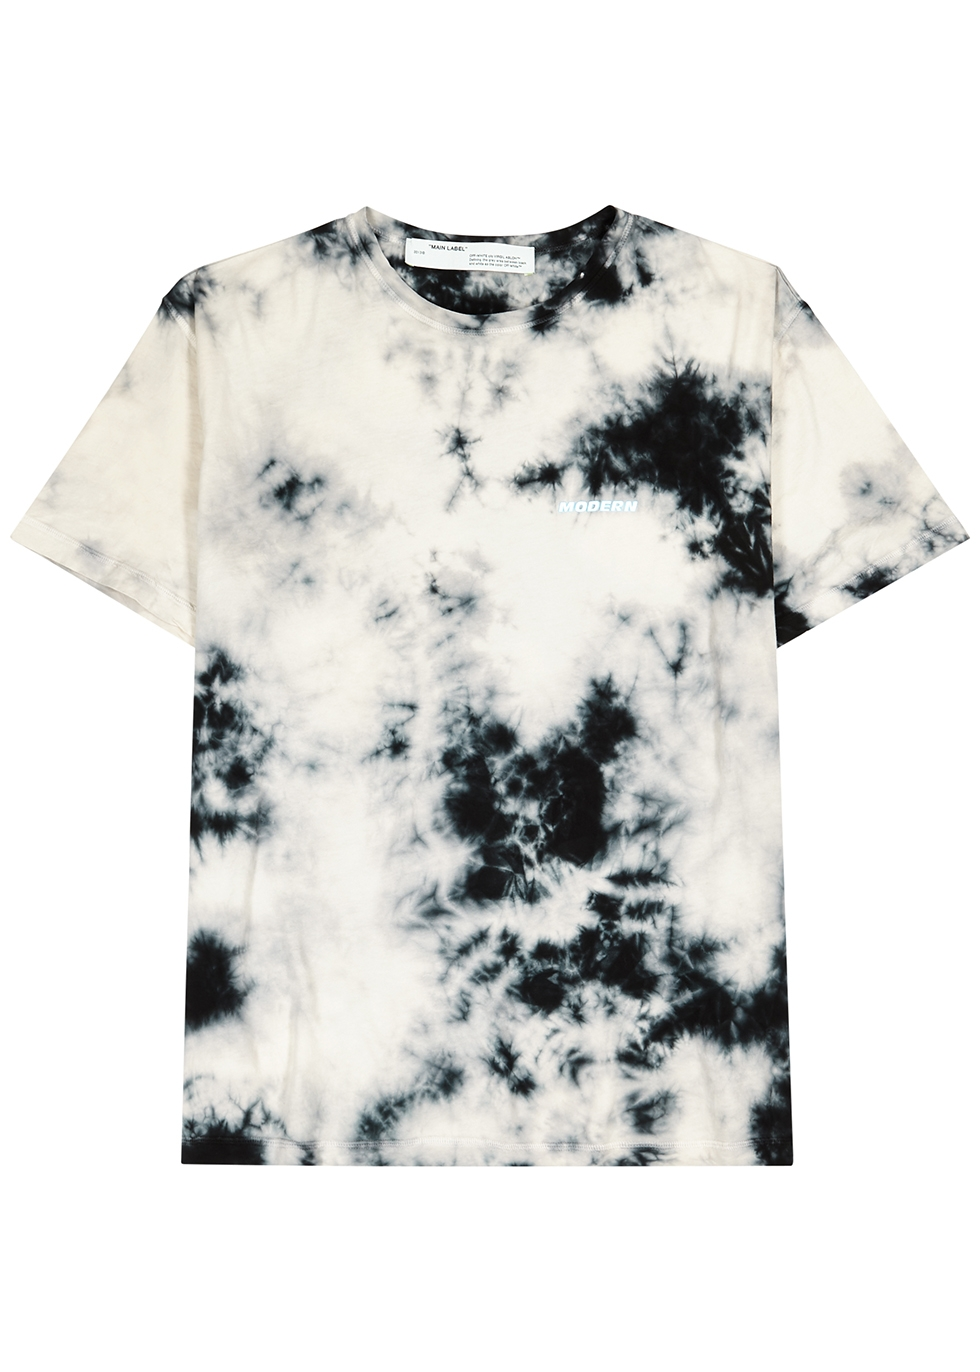 Grey tie-dyed cotton T-shirt